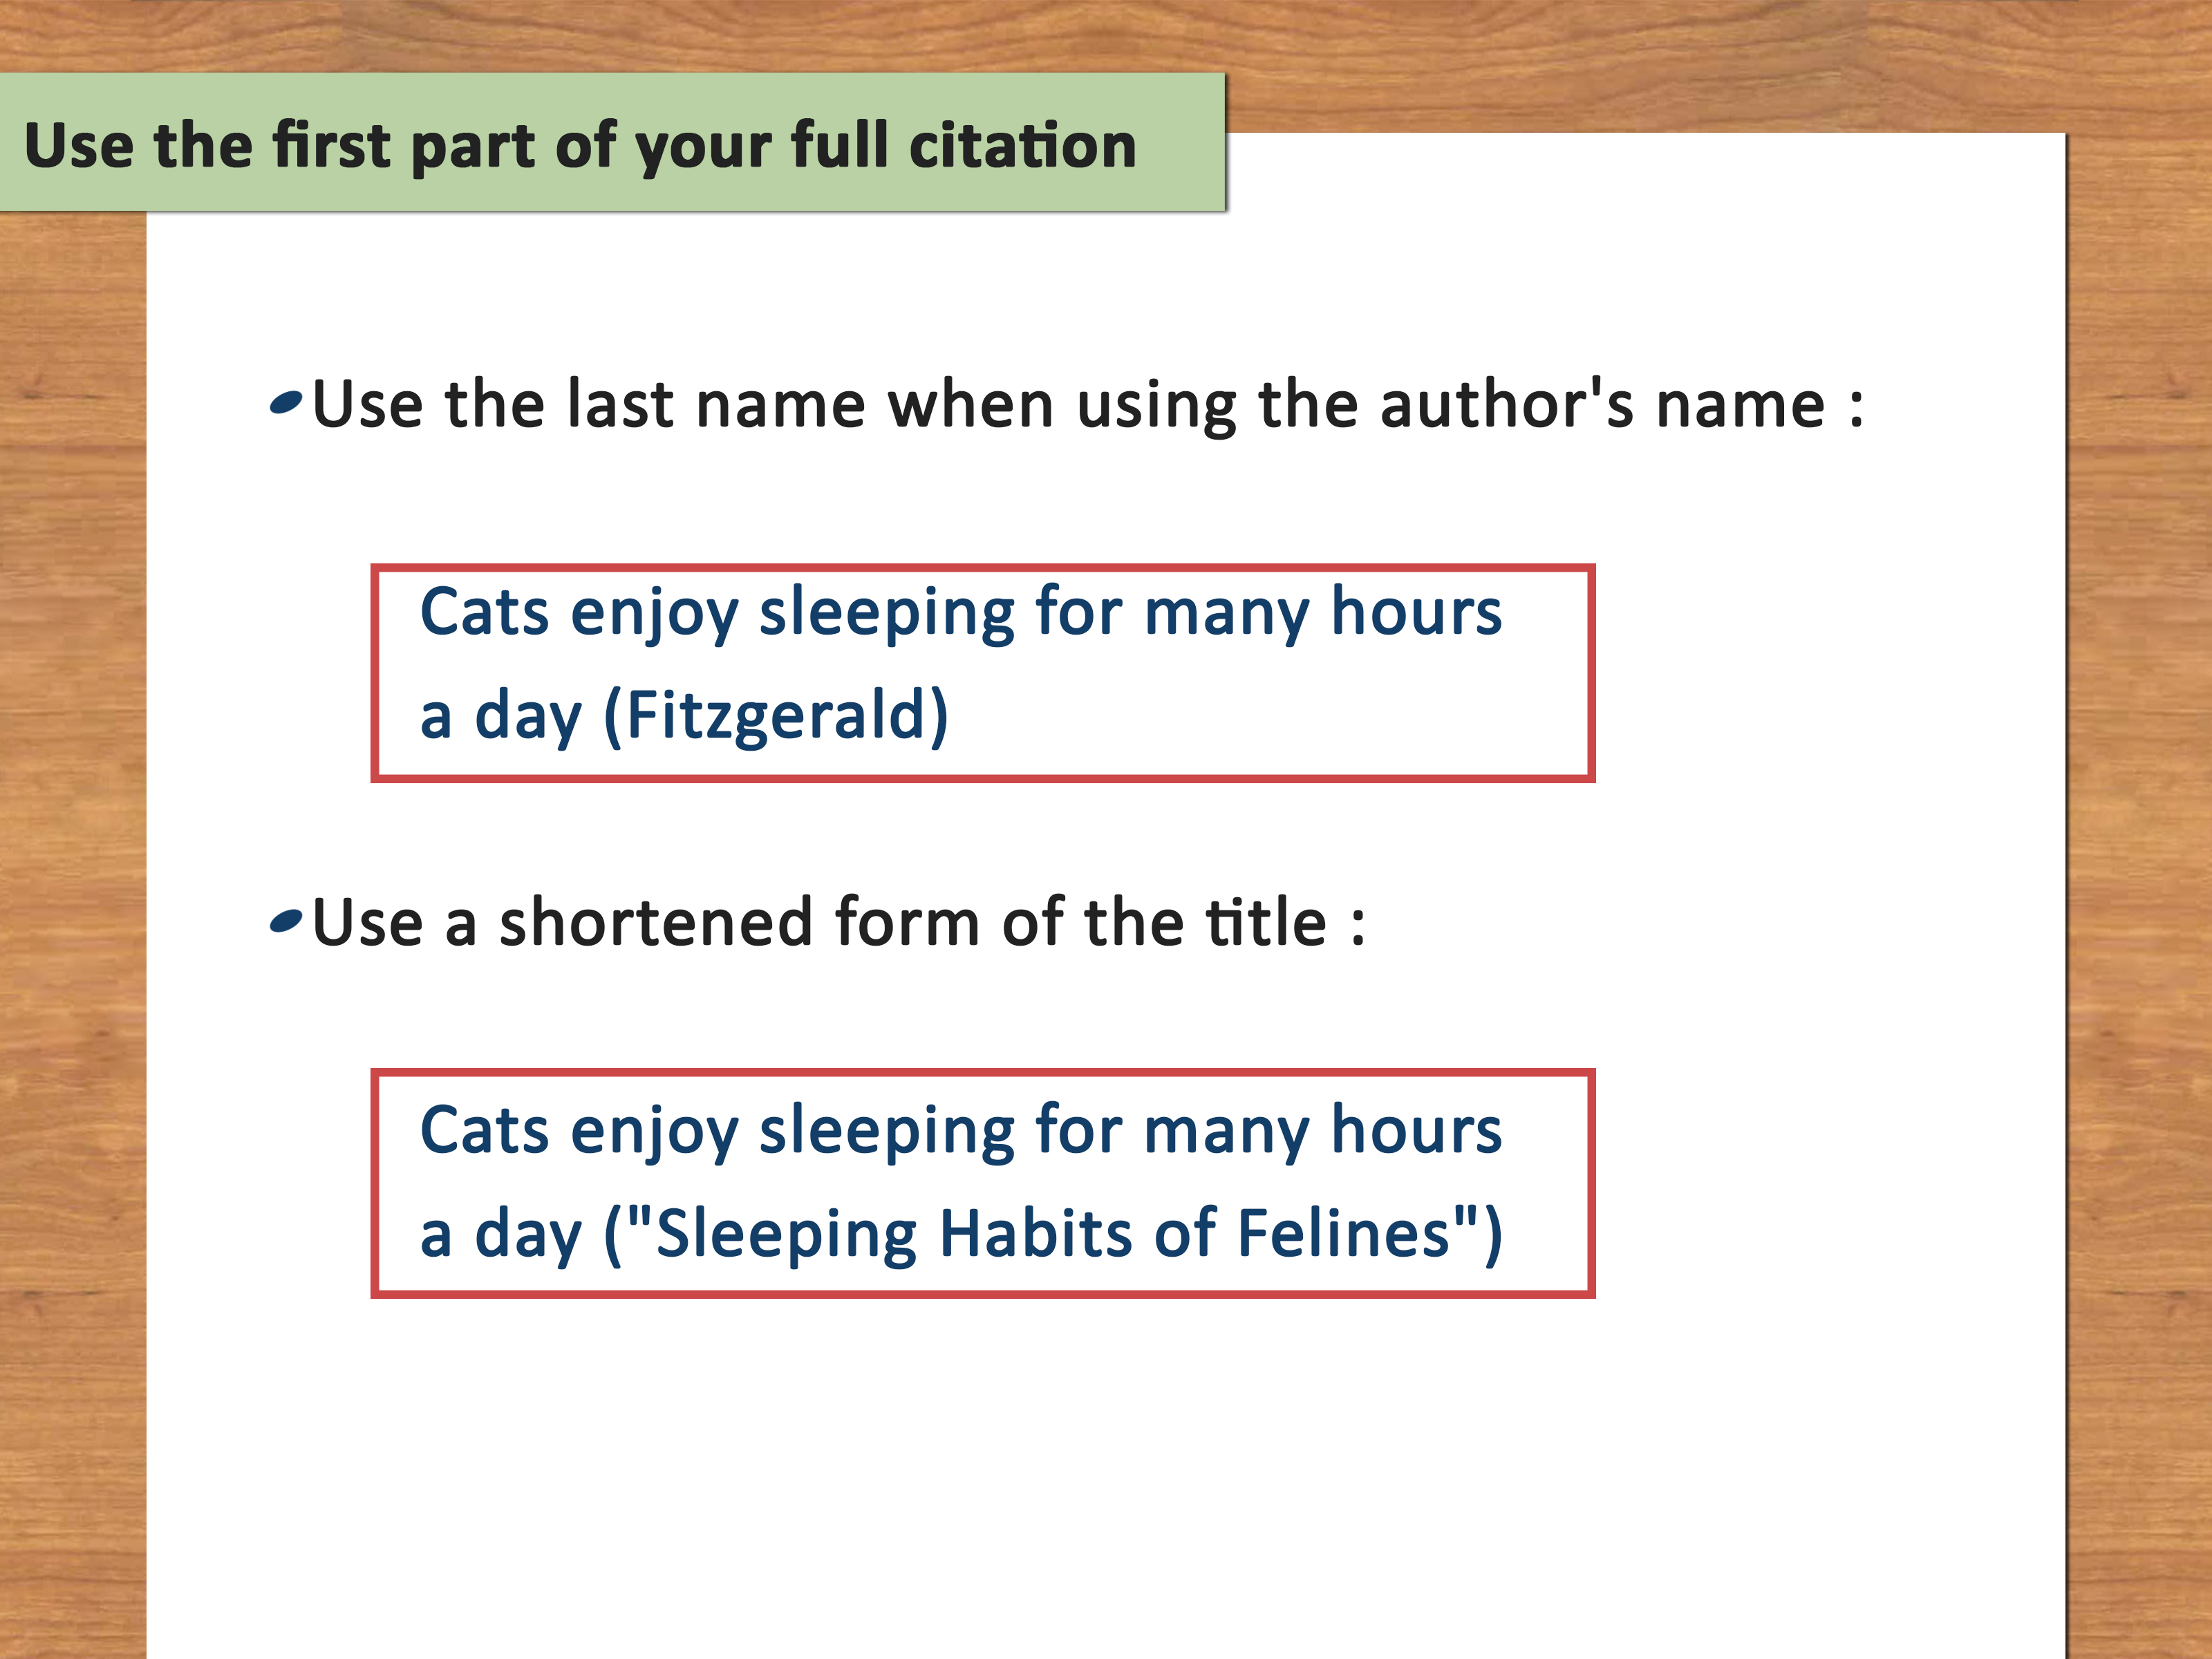 012 Cite Website Using Mla Format Step Version Research Paper In Text Wonderful Citations Full